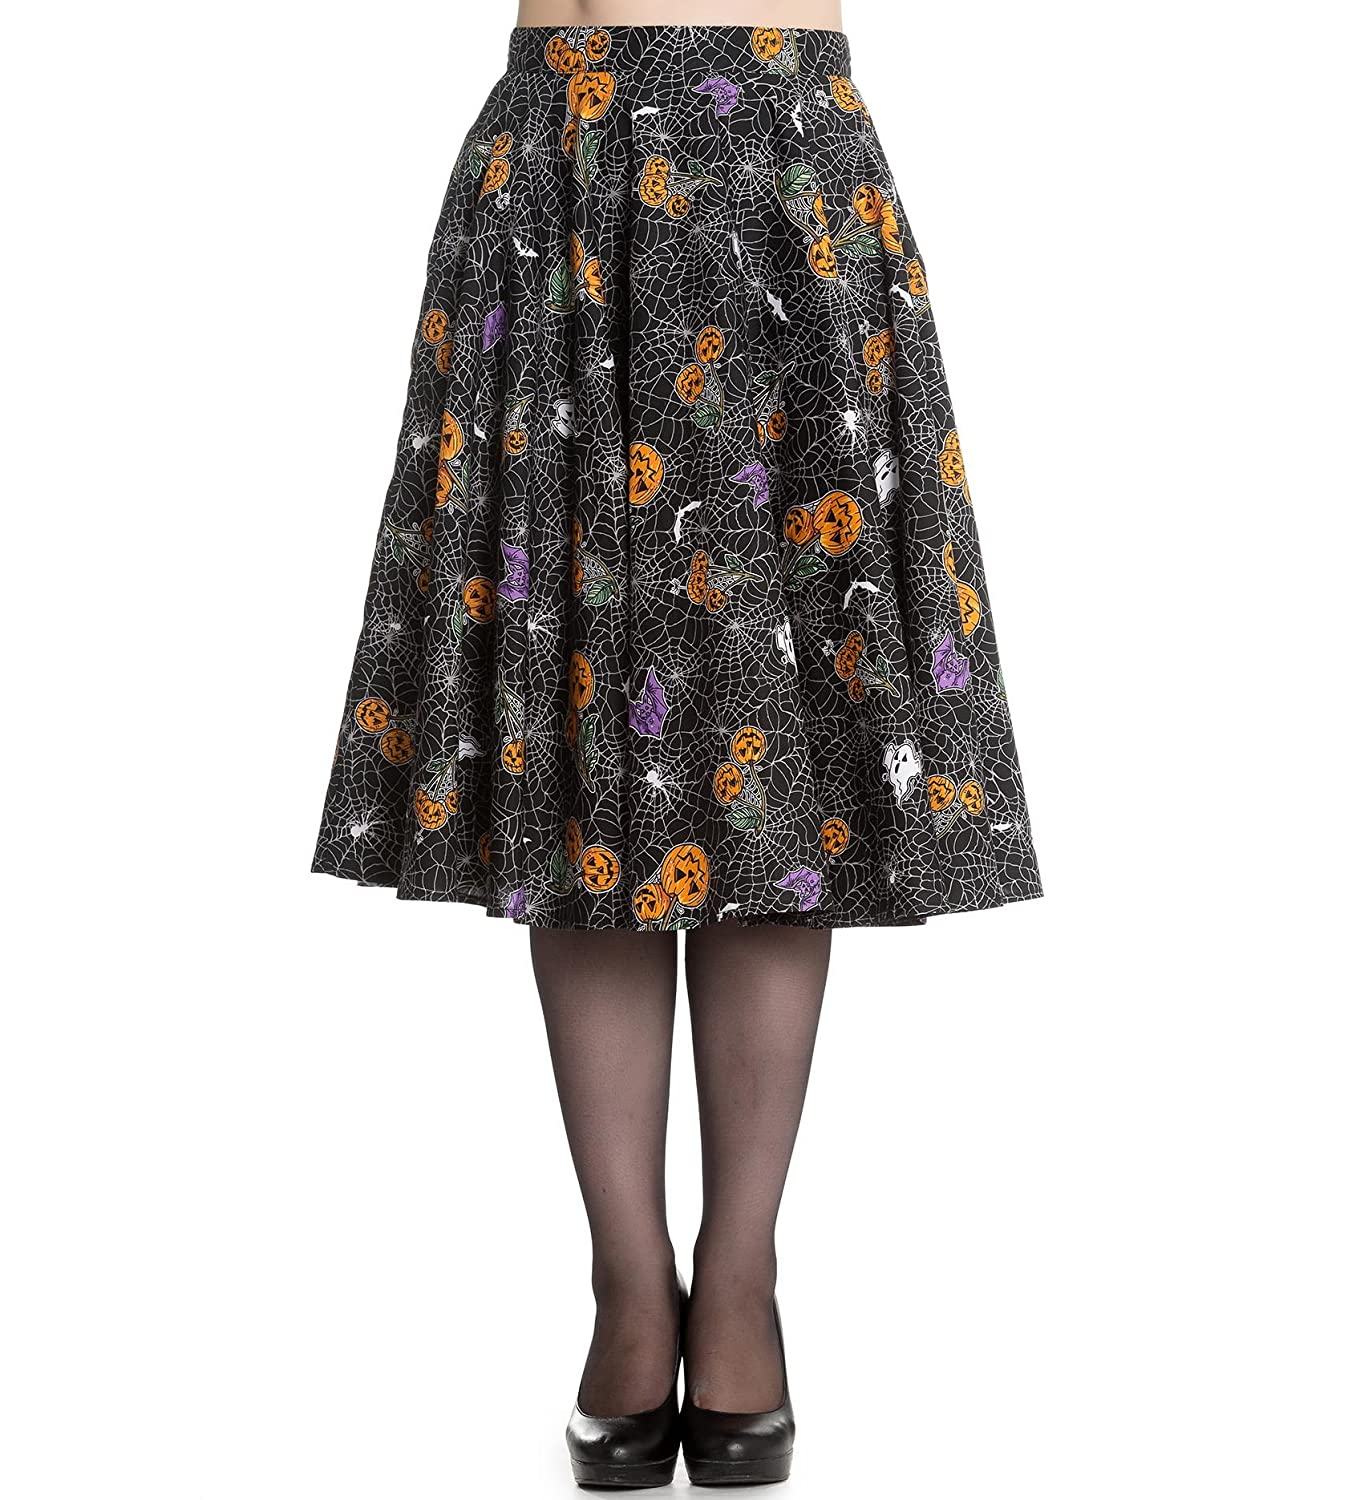 Easy Retro Halloween Costumes – Last Minute Ideas Hell Bunny Goth Webs Pumpkins 50s Skirt Harlow Halloween Bats £11.90 AT vintagedancer.com